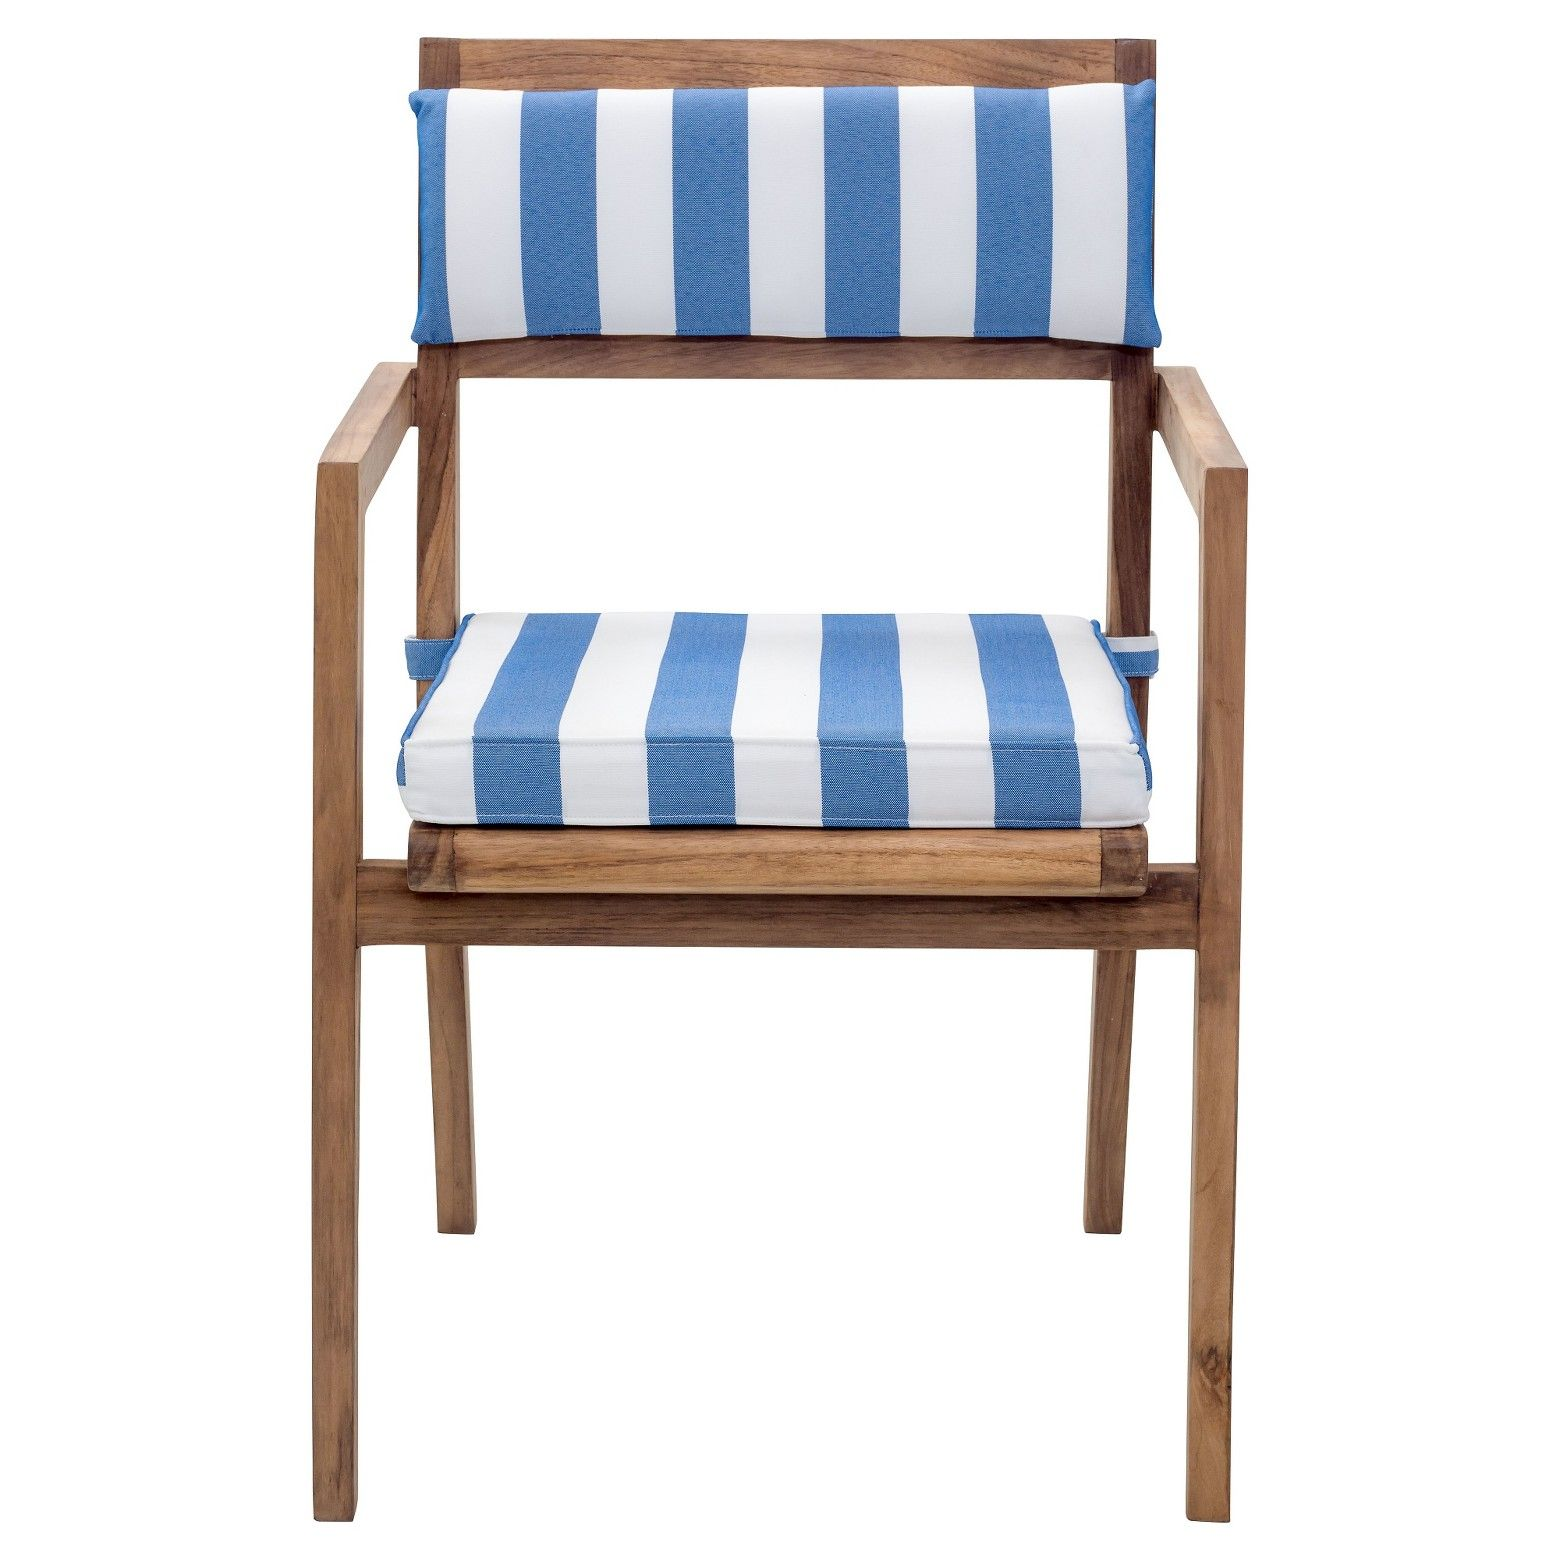 The Nautical cushions are made from industry leader